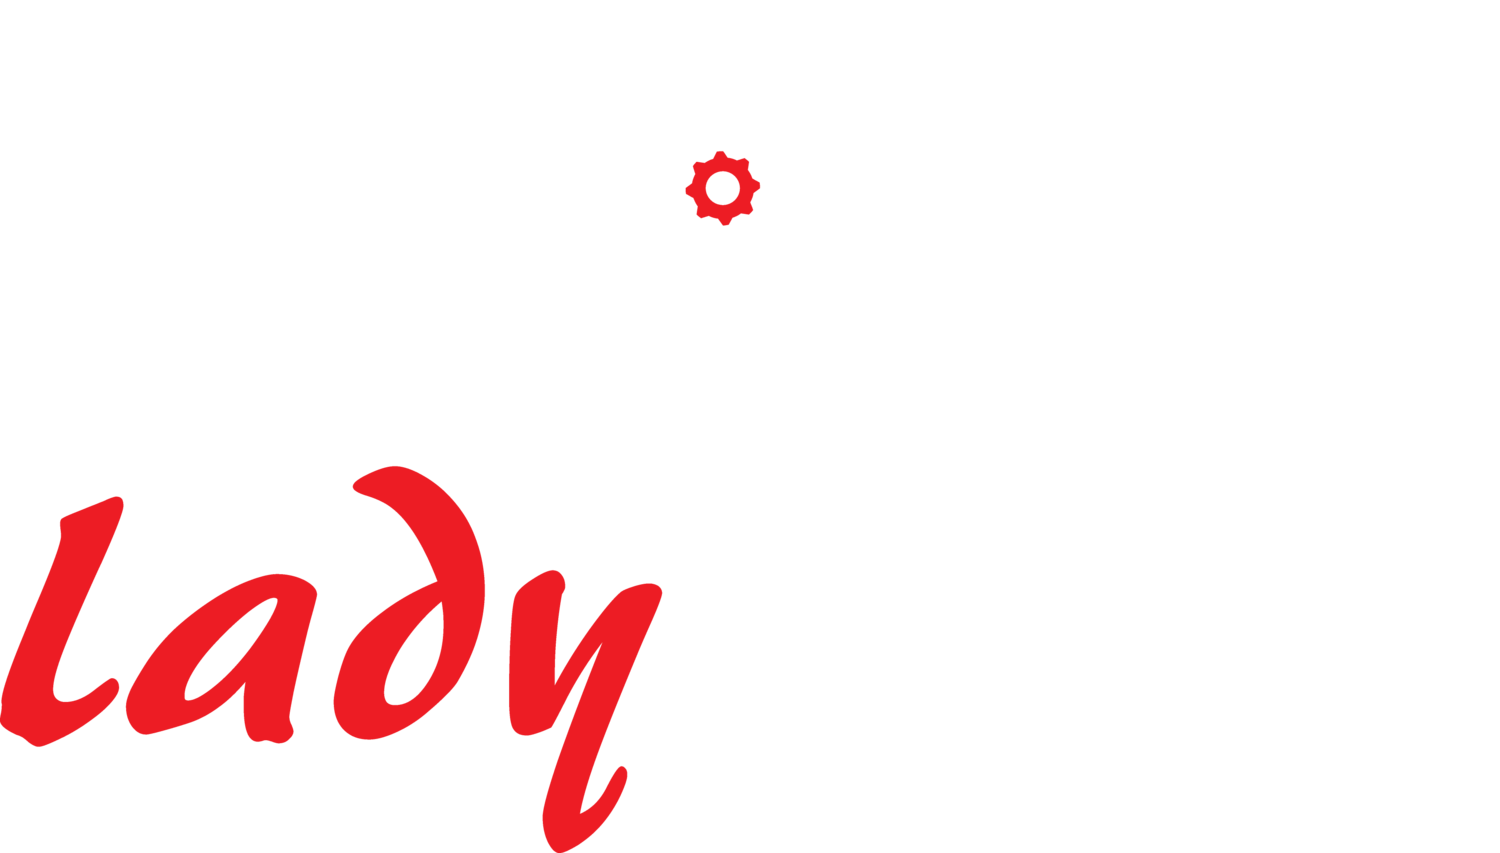 We provide impeccable auto repair services designed to educate, empower, and transform our customer's experience